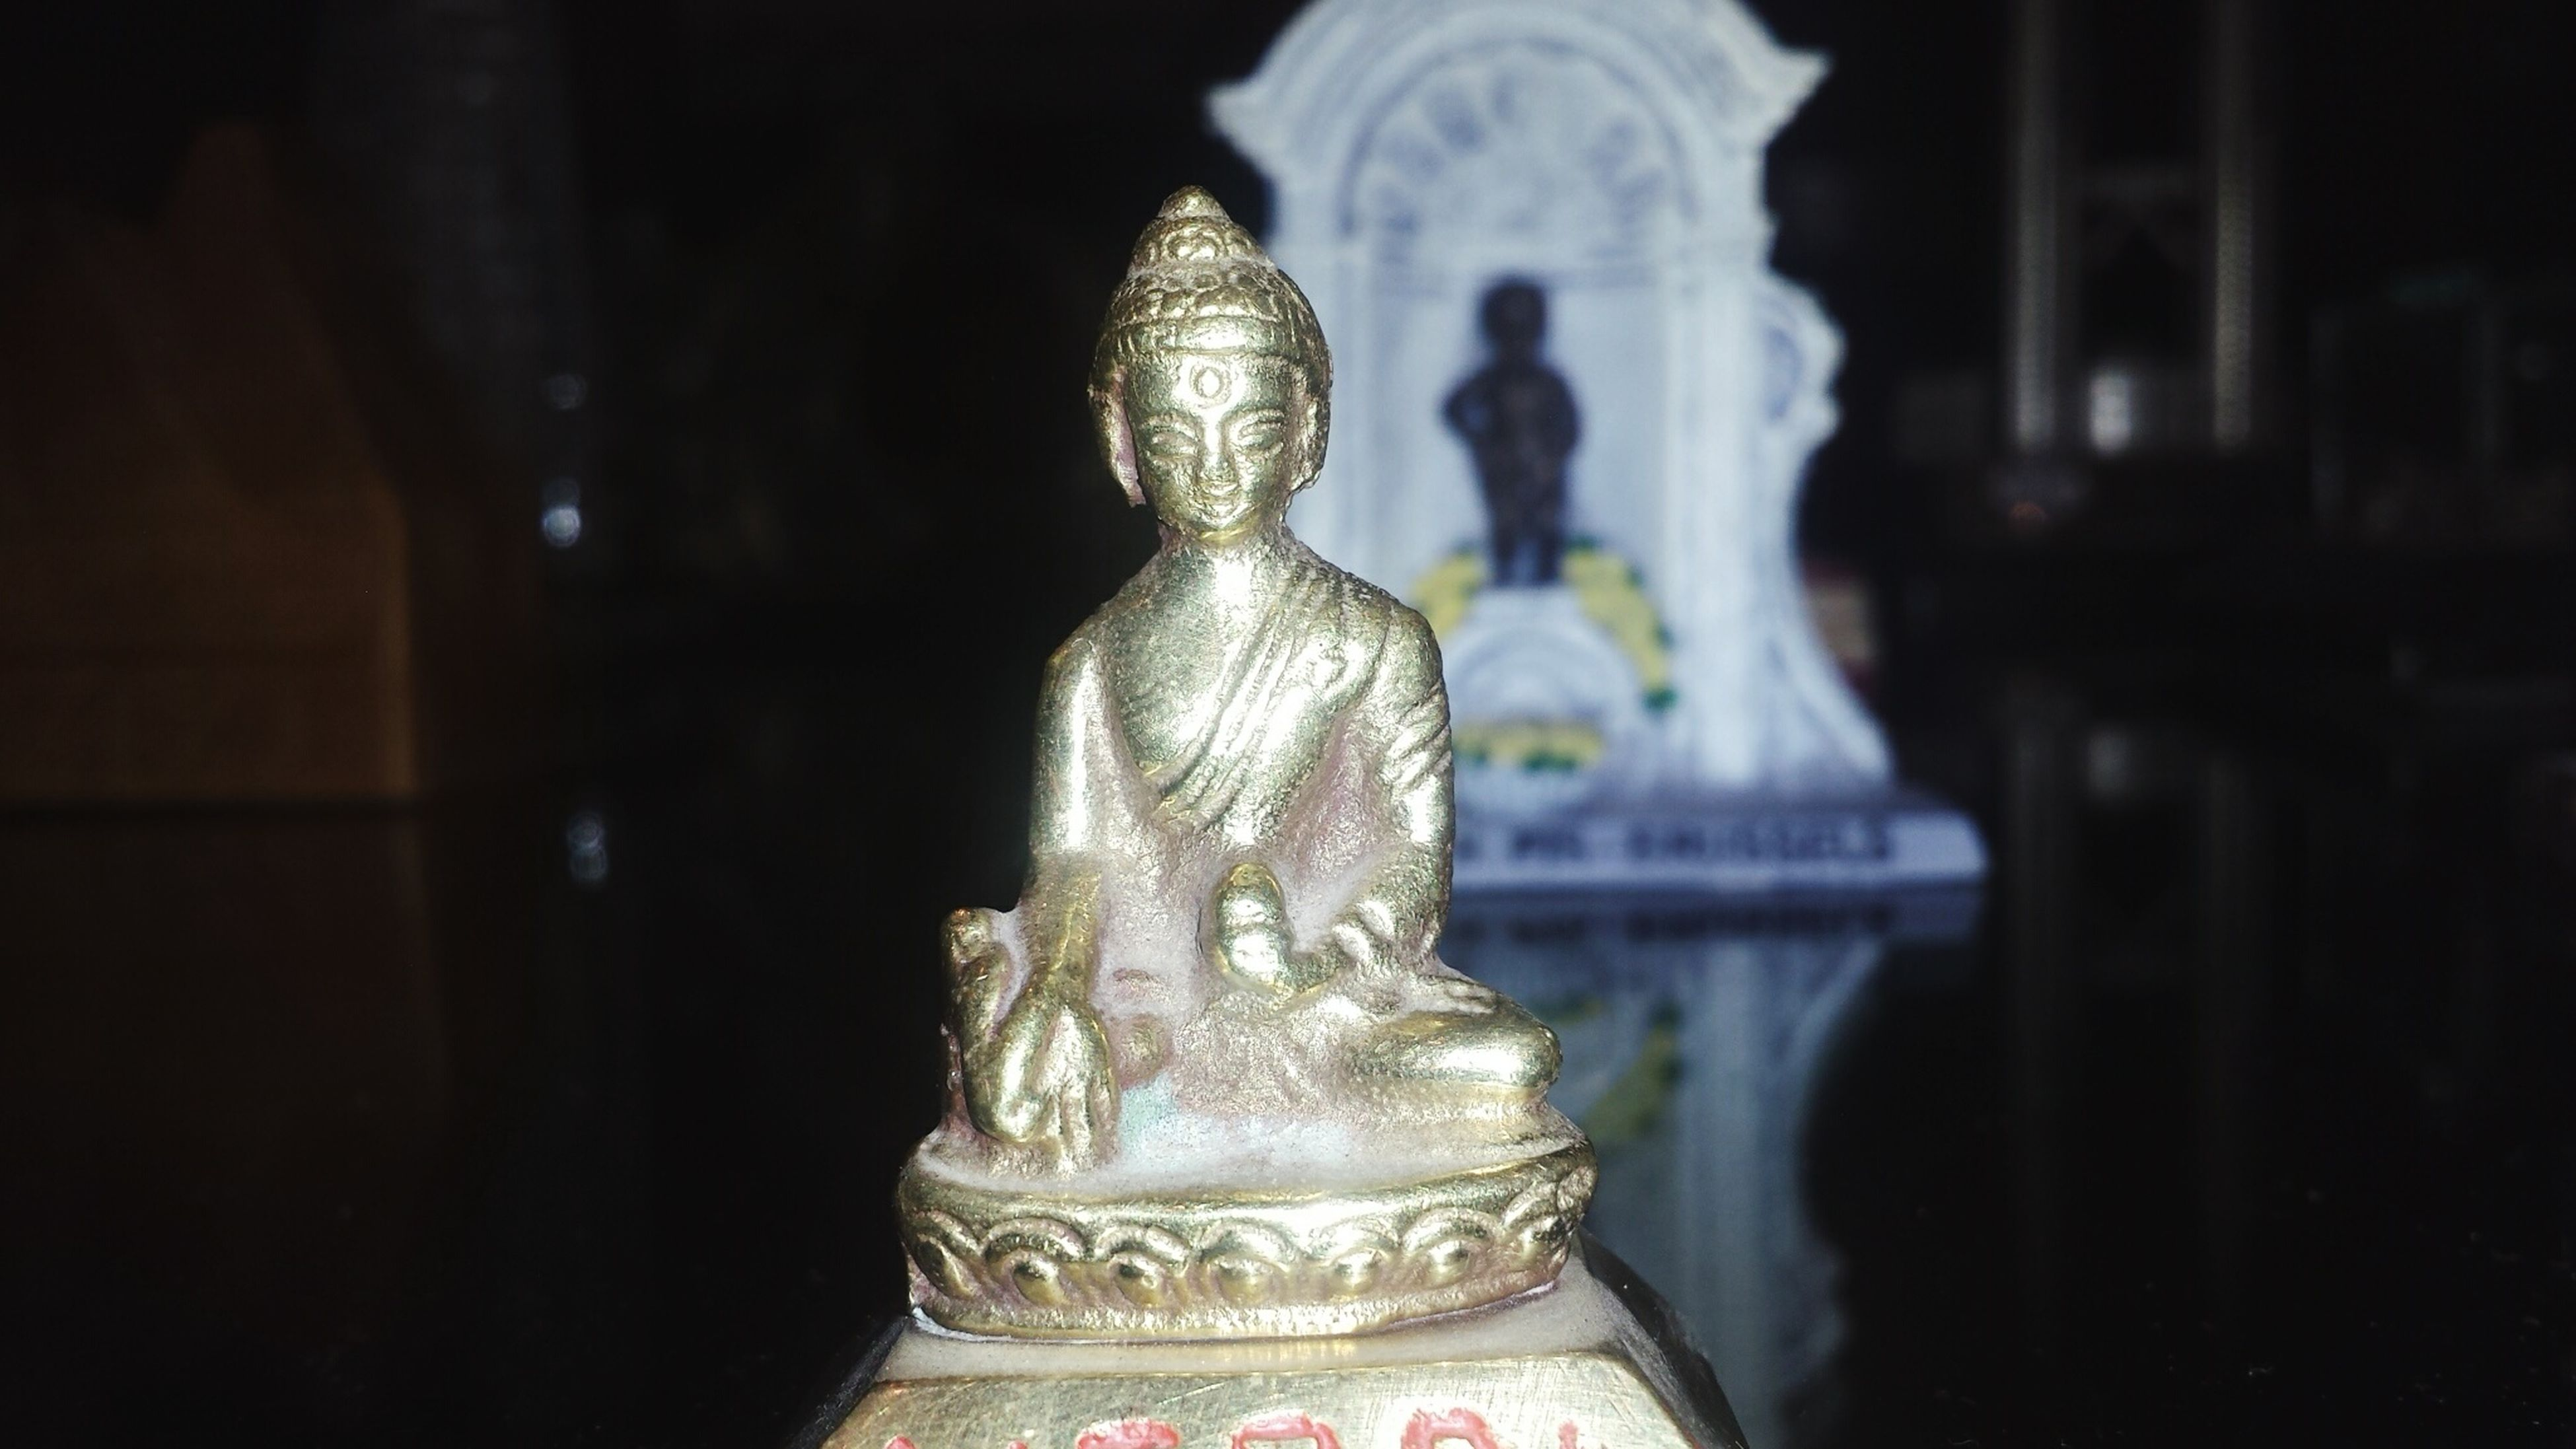 statue, sculpture, art and craft, human representation, art, religion, creativity, spirituality, place of worship, buddha, famous place, gold colored, travel destinations, indoors, carving - craft product, temple - building, international landmark